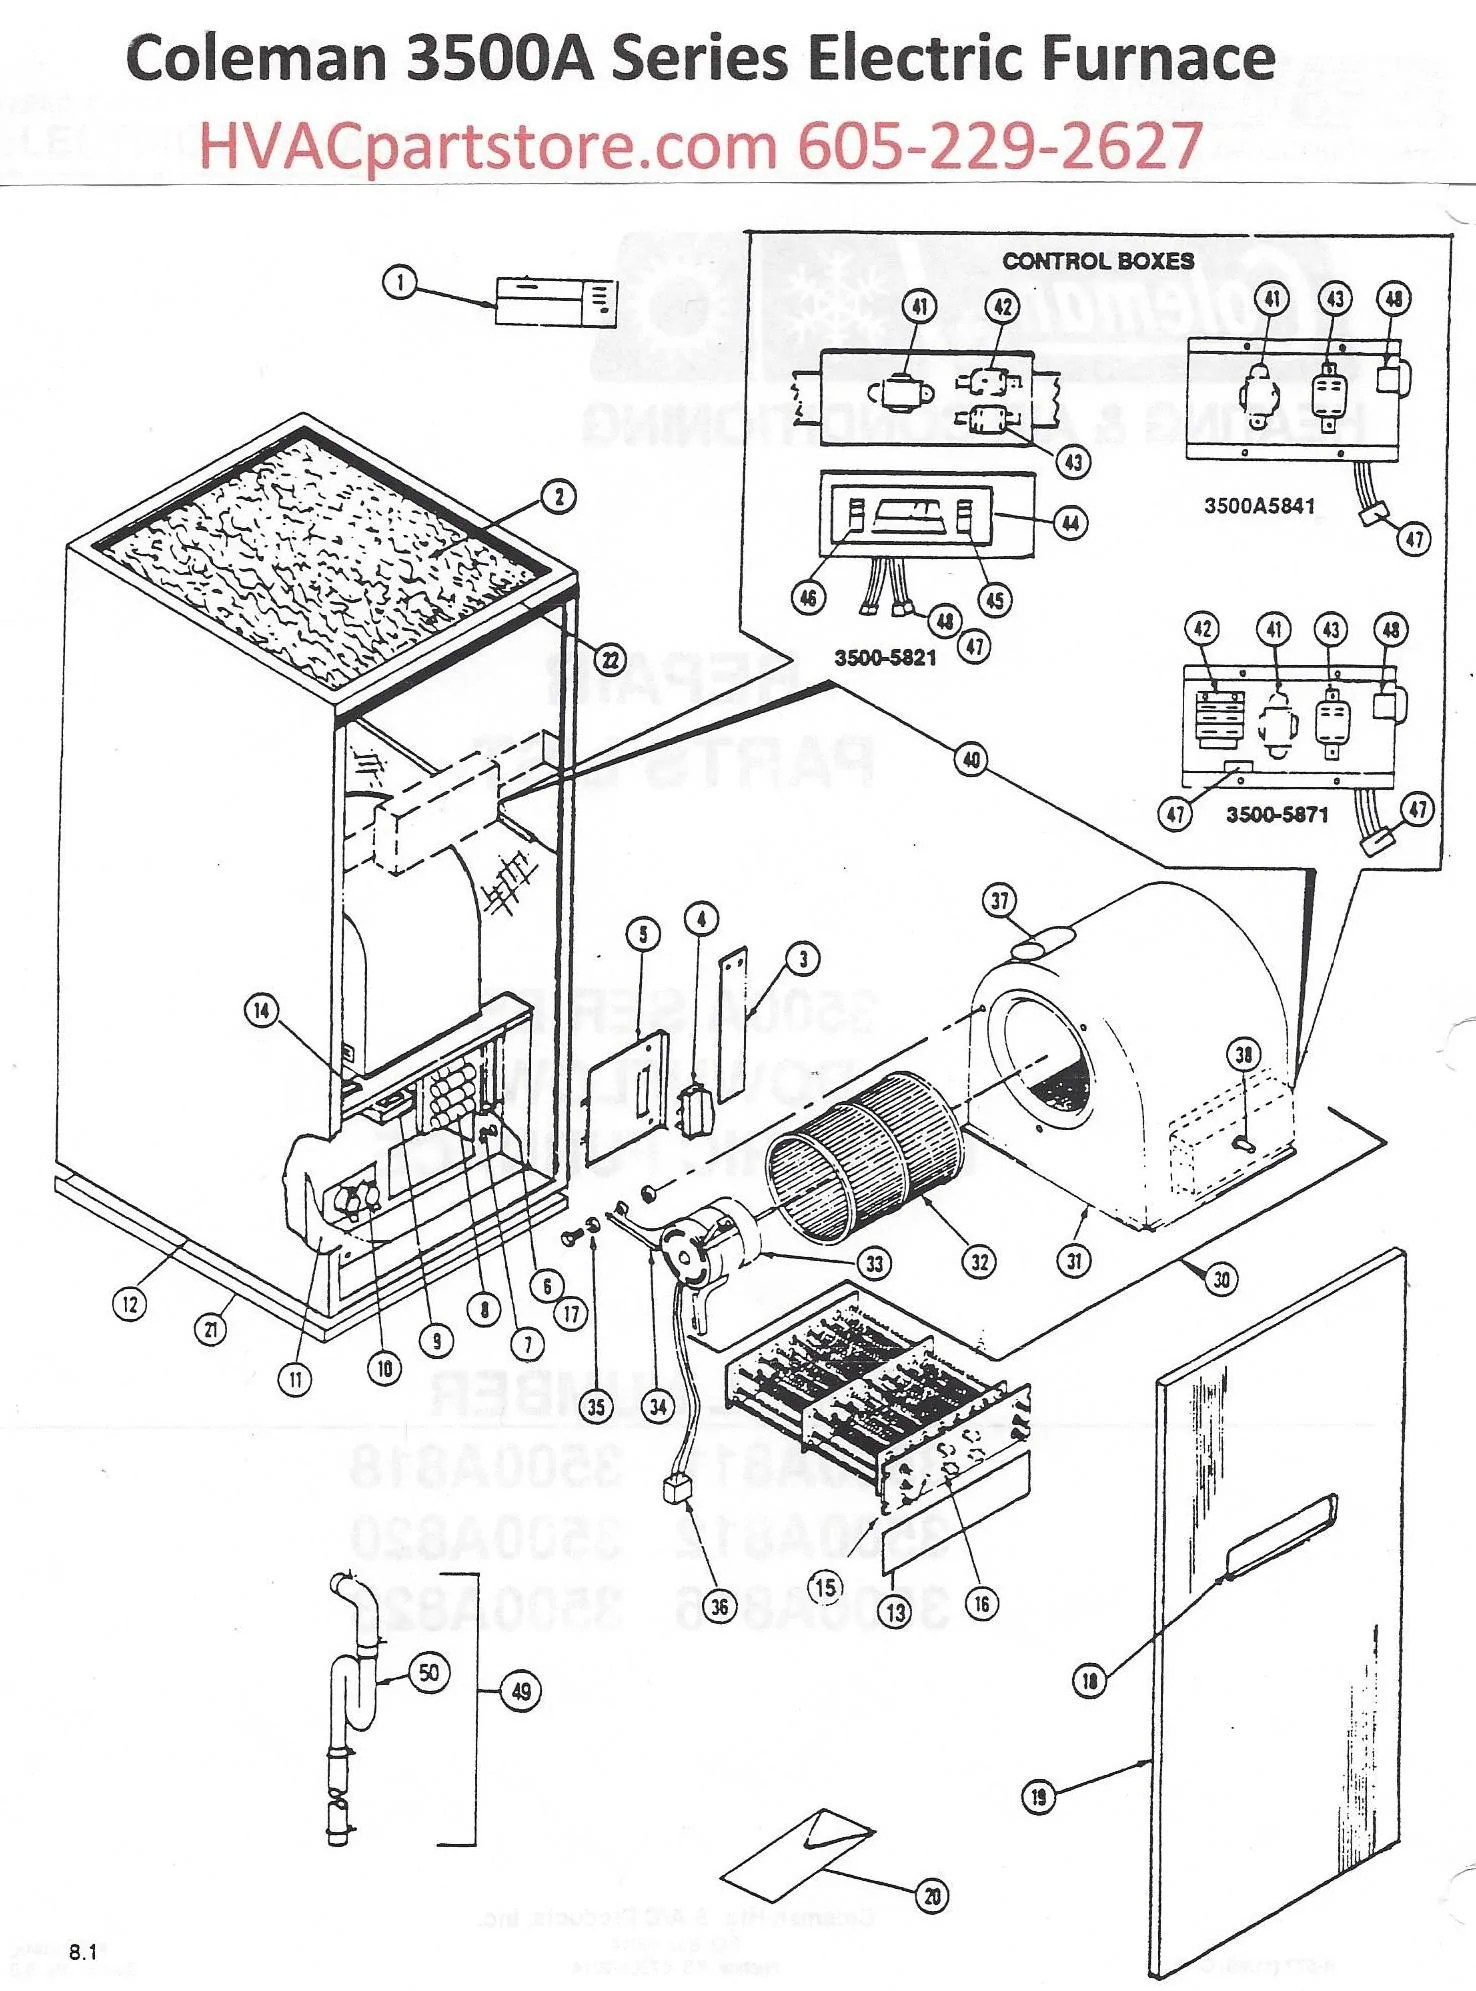 3500a823 coleman electric furnace parts u2013 hvacpartstoreclick here to view an installation manual which includes [ 1476 x 1991 Pixel ]